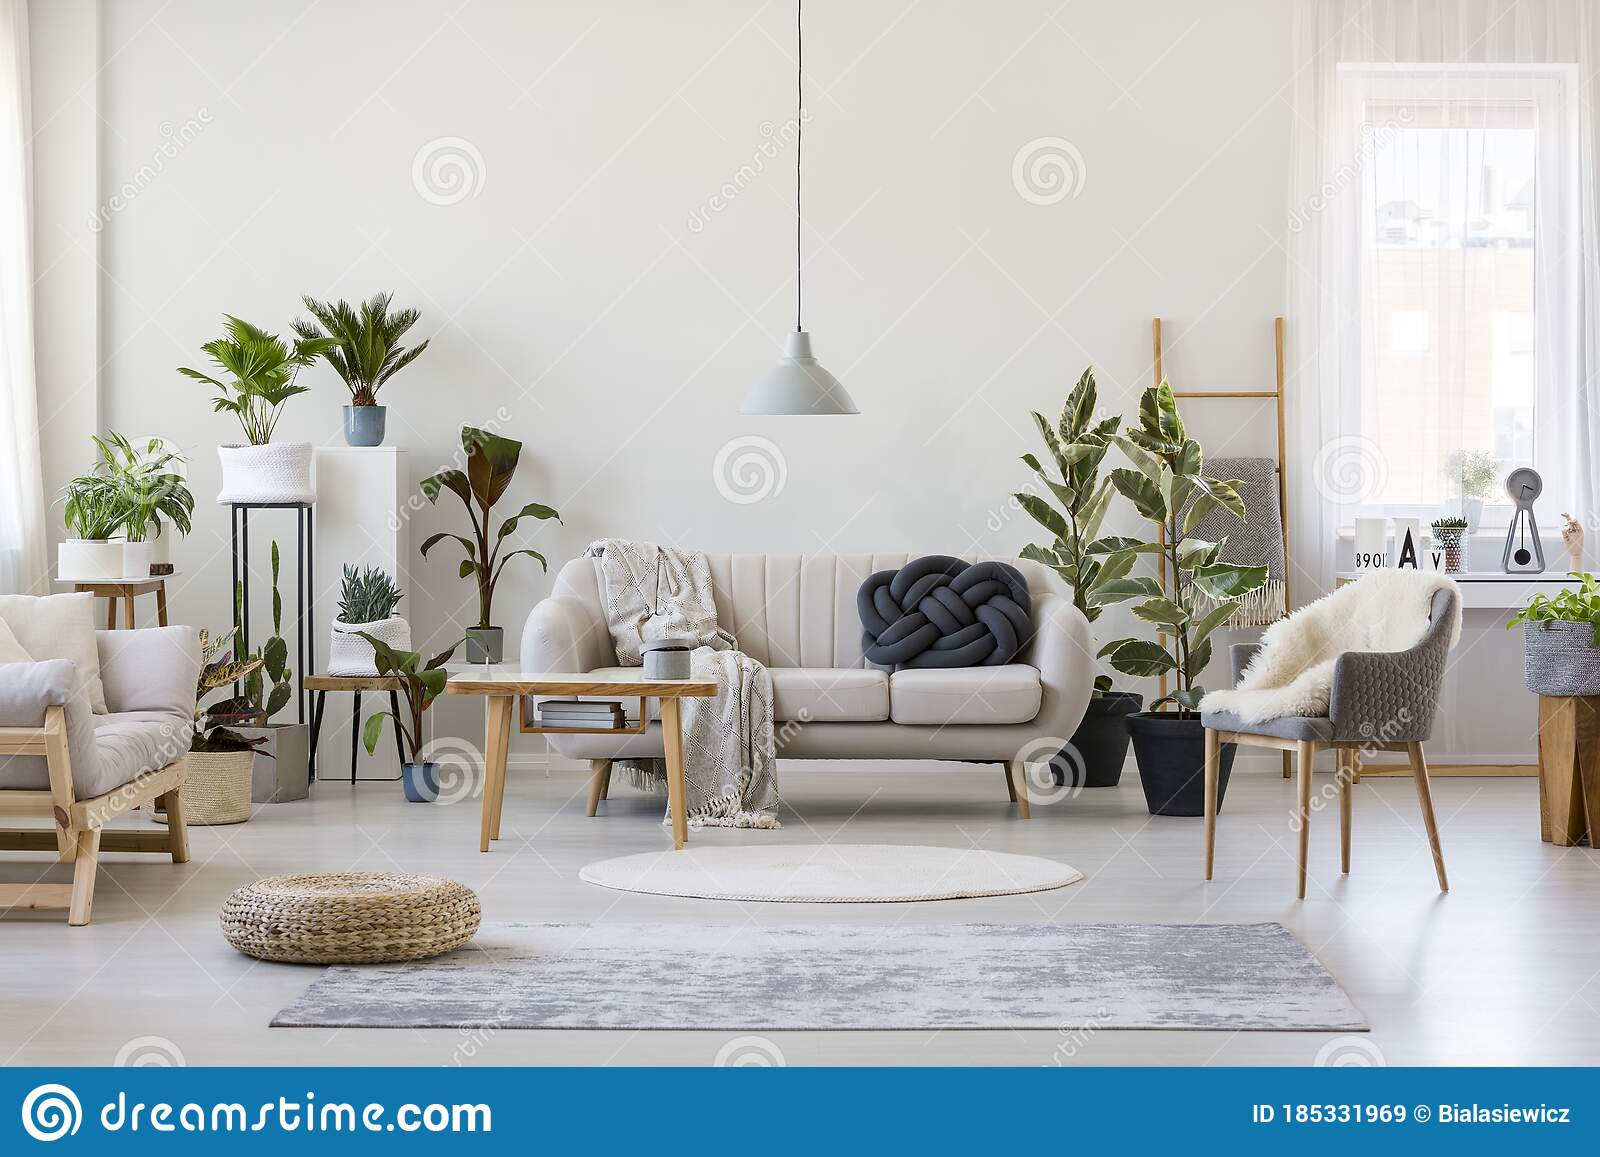 Urban Jungle In Stylish Room Interior With White Couch With Black Knot Pillow And Wooden Furniture Copy Space On Empty Stock Image Image Of Knot Apartment 185331969